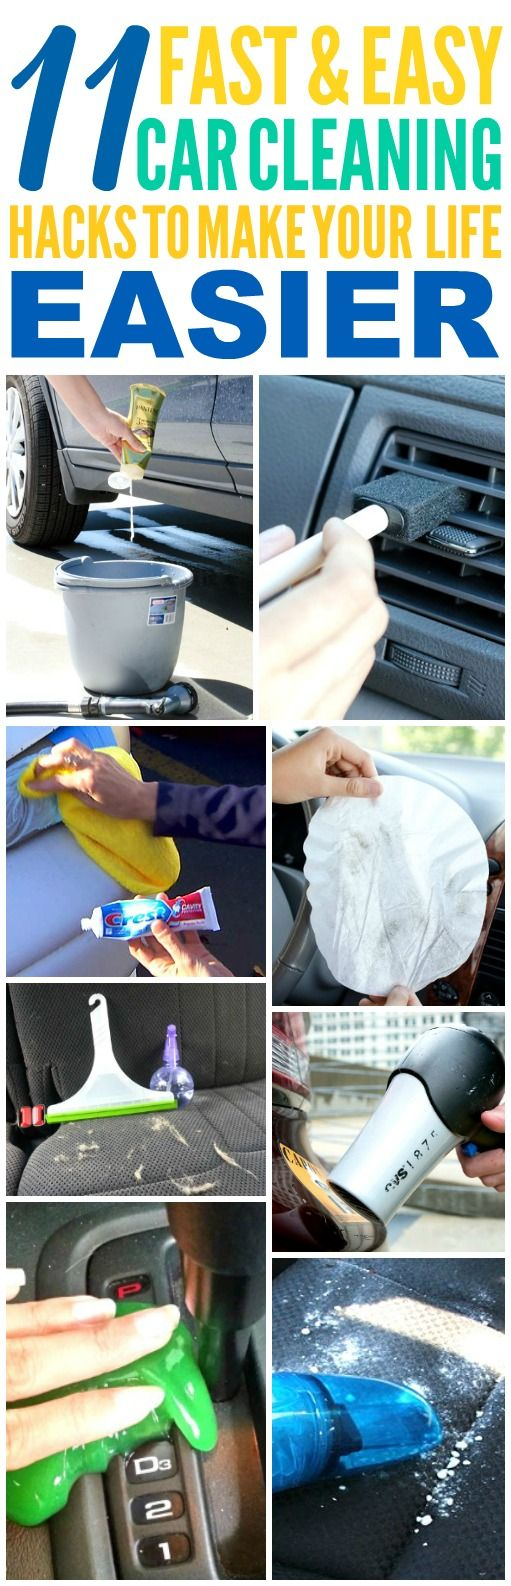 These 11 Time Saving Car Hacks are THE BEST! I'm so glad I found these GREAT tips! now I have some great ways to keep my car clean and organized! Definitely pinning!